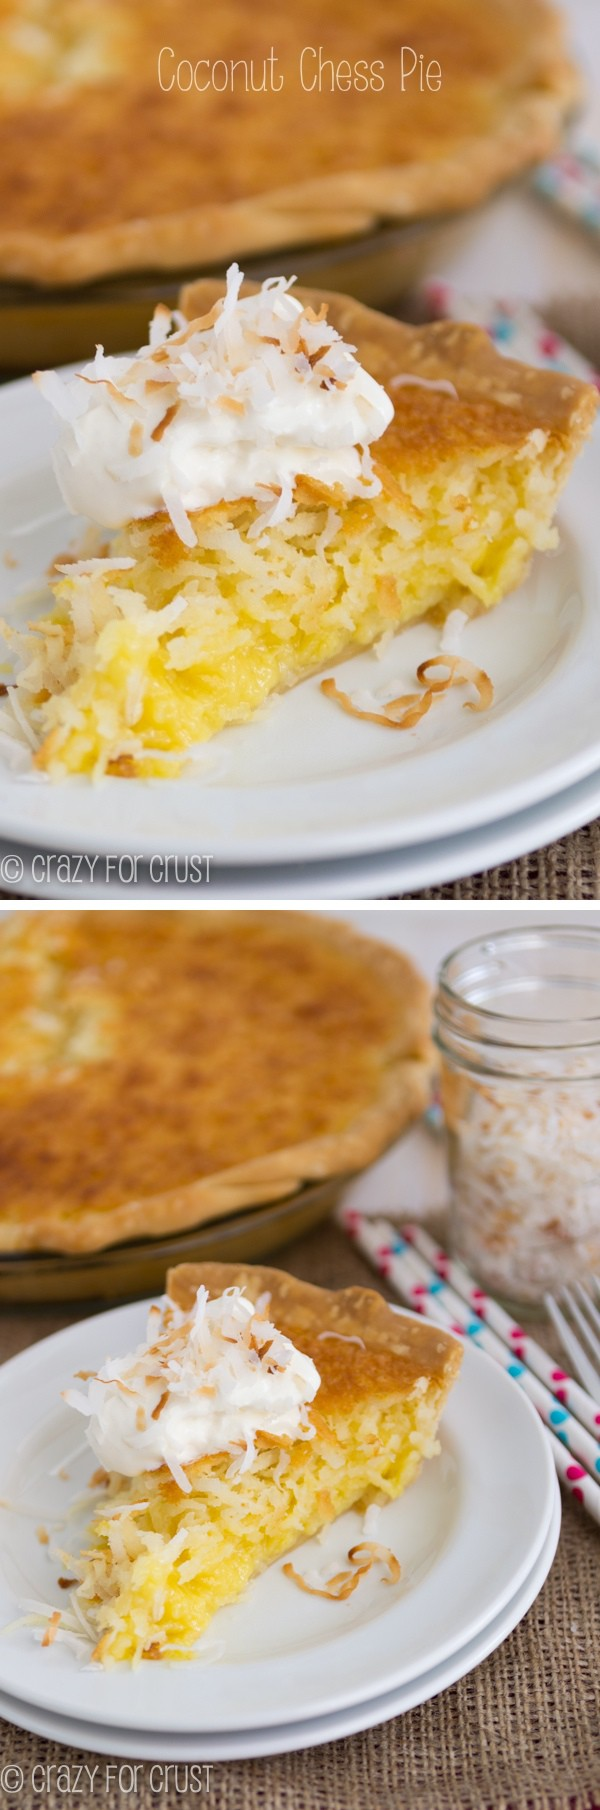 Coconut Chess Pie - coconut in every bite!